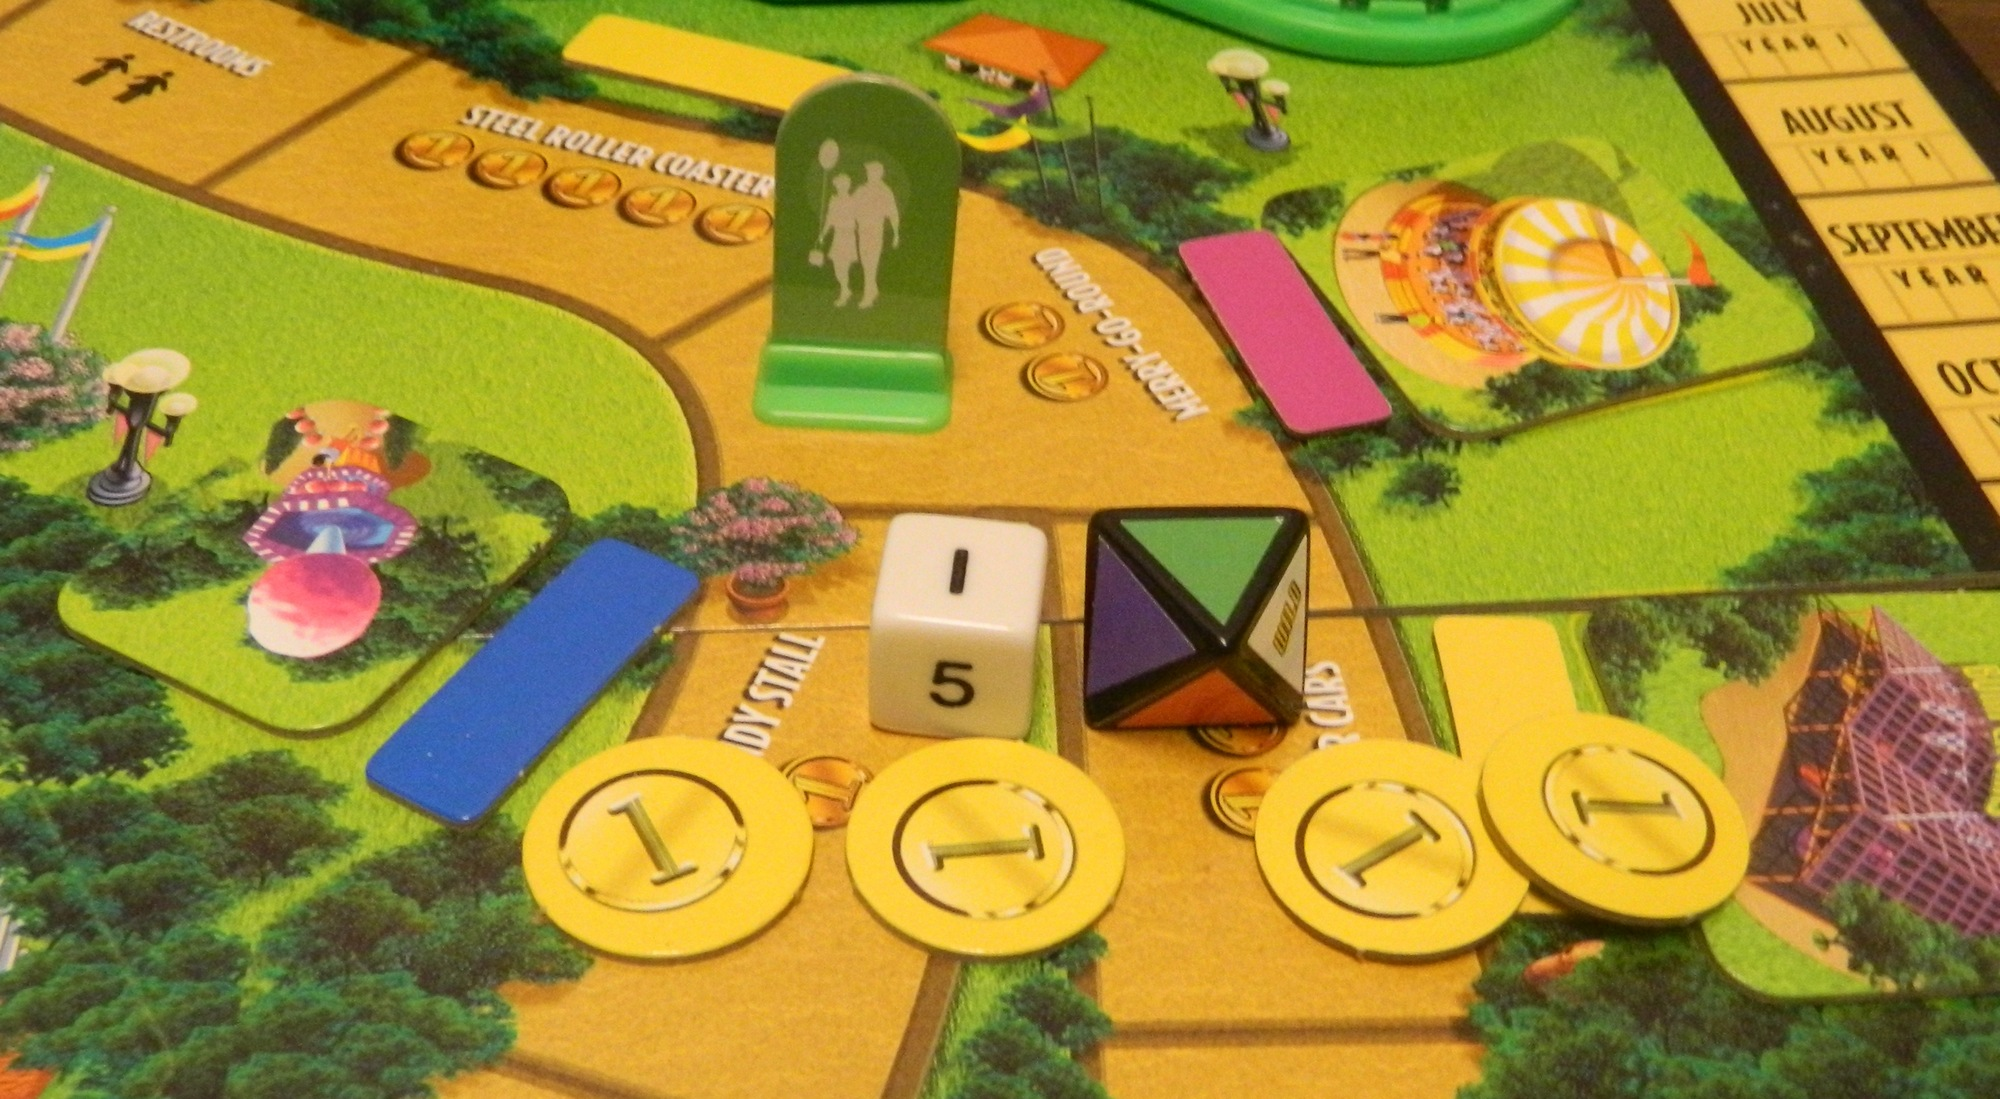 Roller Coaster Tycoon Board Game Review and Rules | Geeky